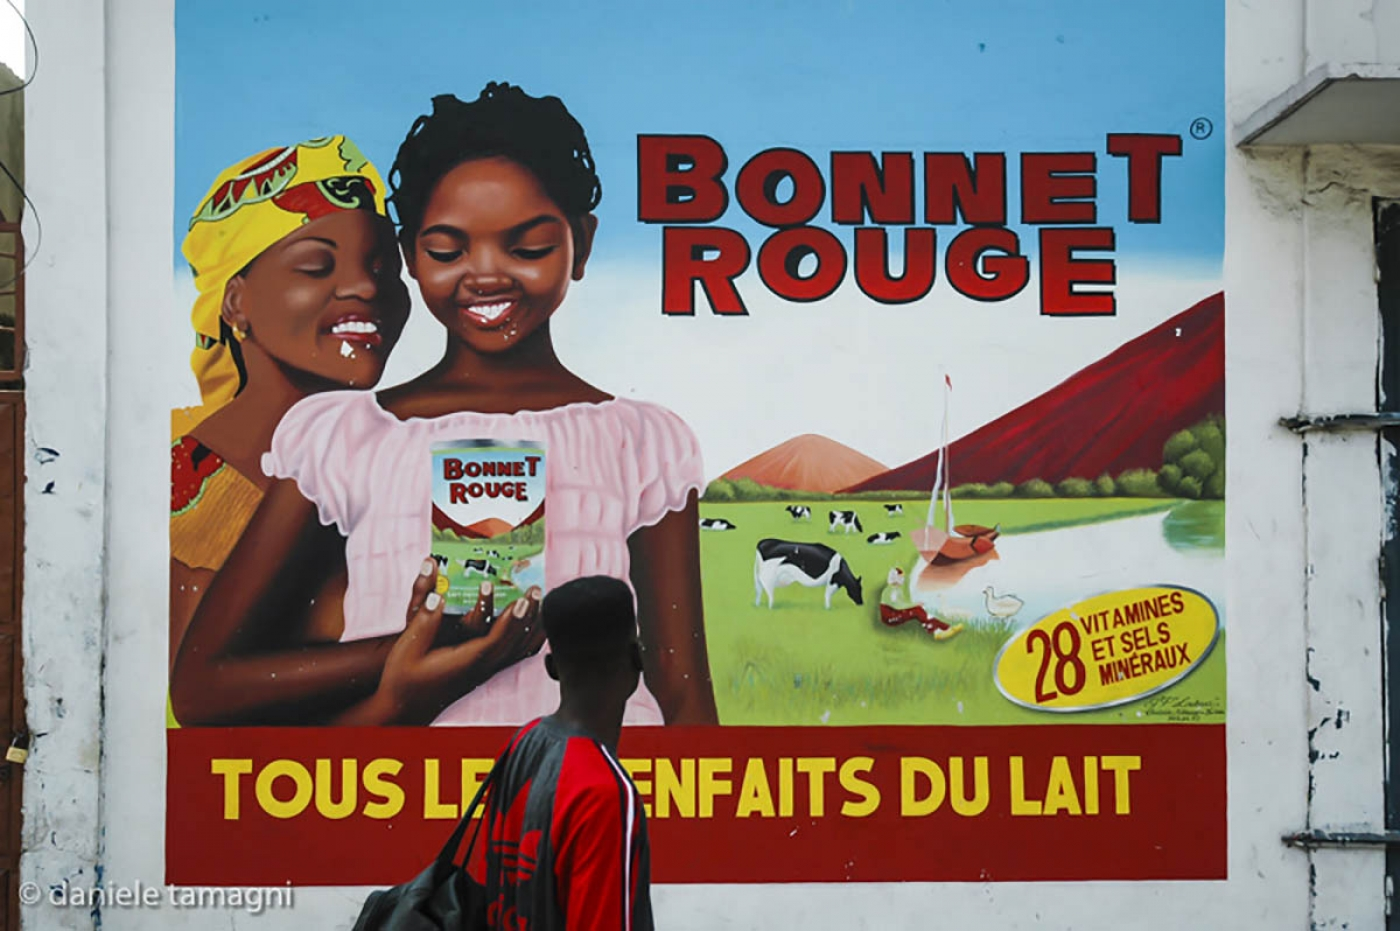 Bonnet Rouge from the series African Brands Walls Image